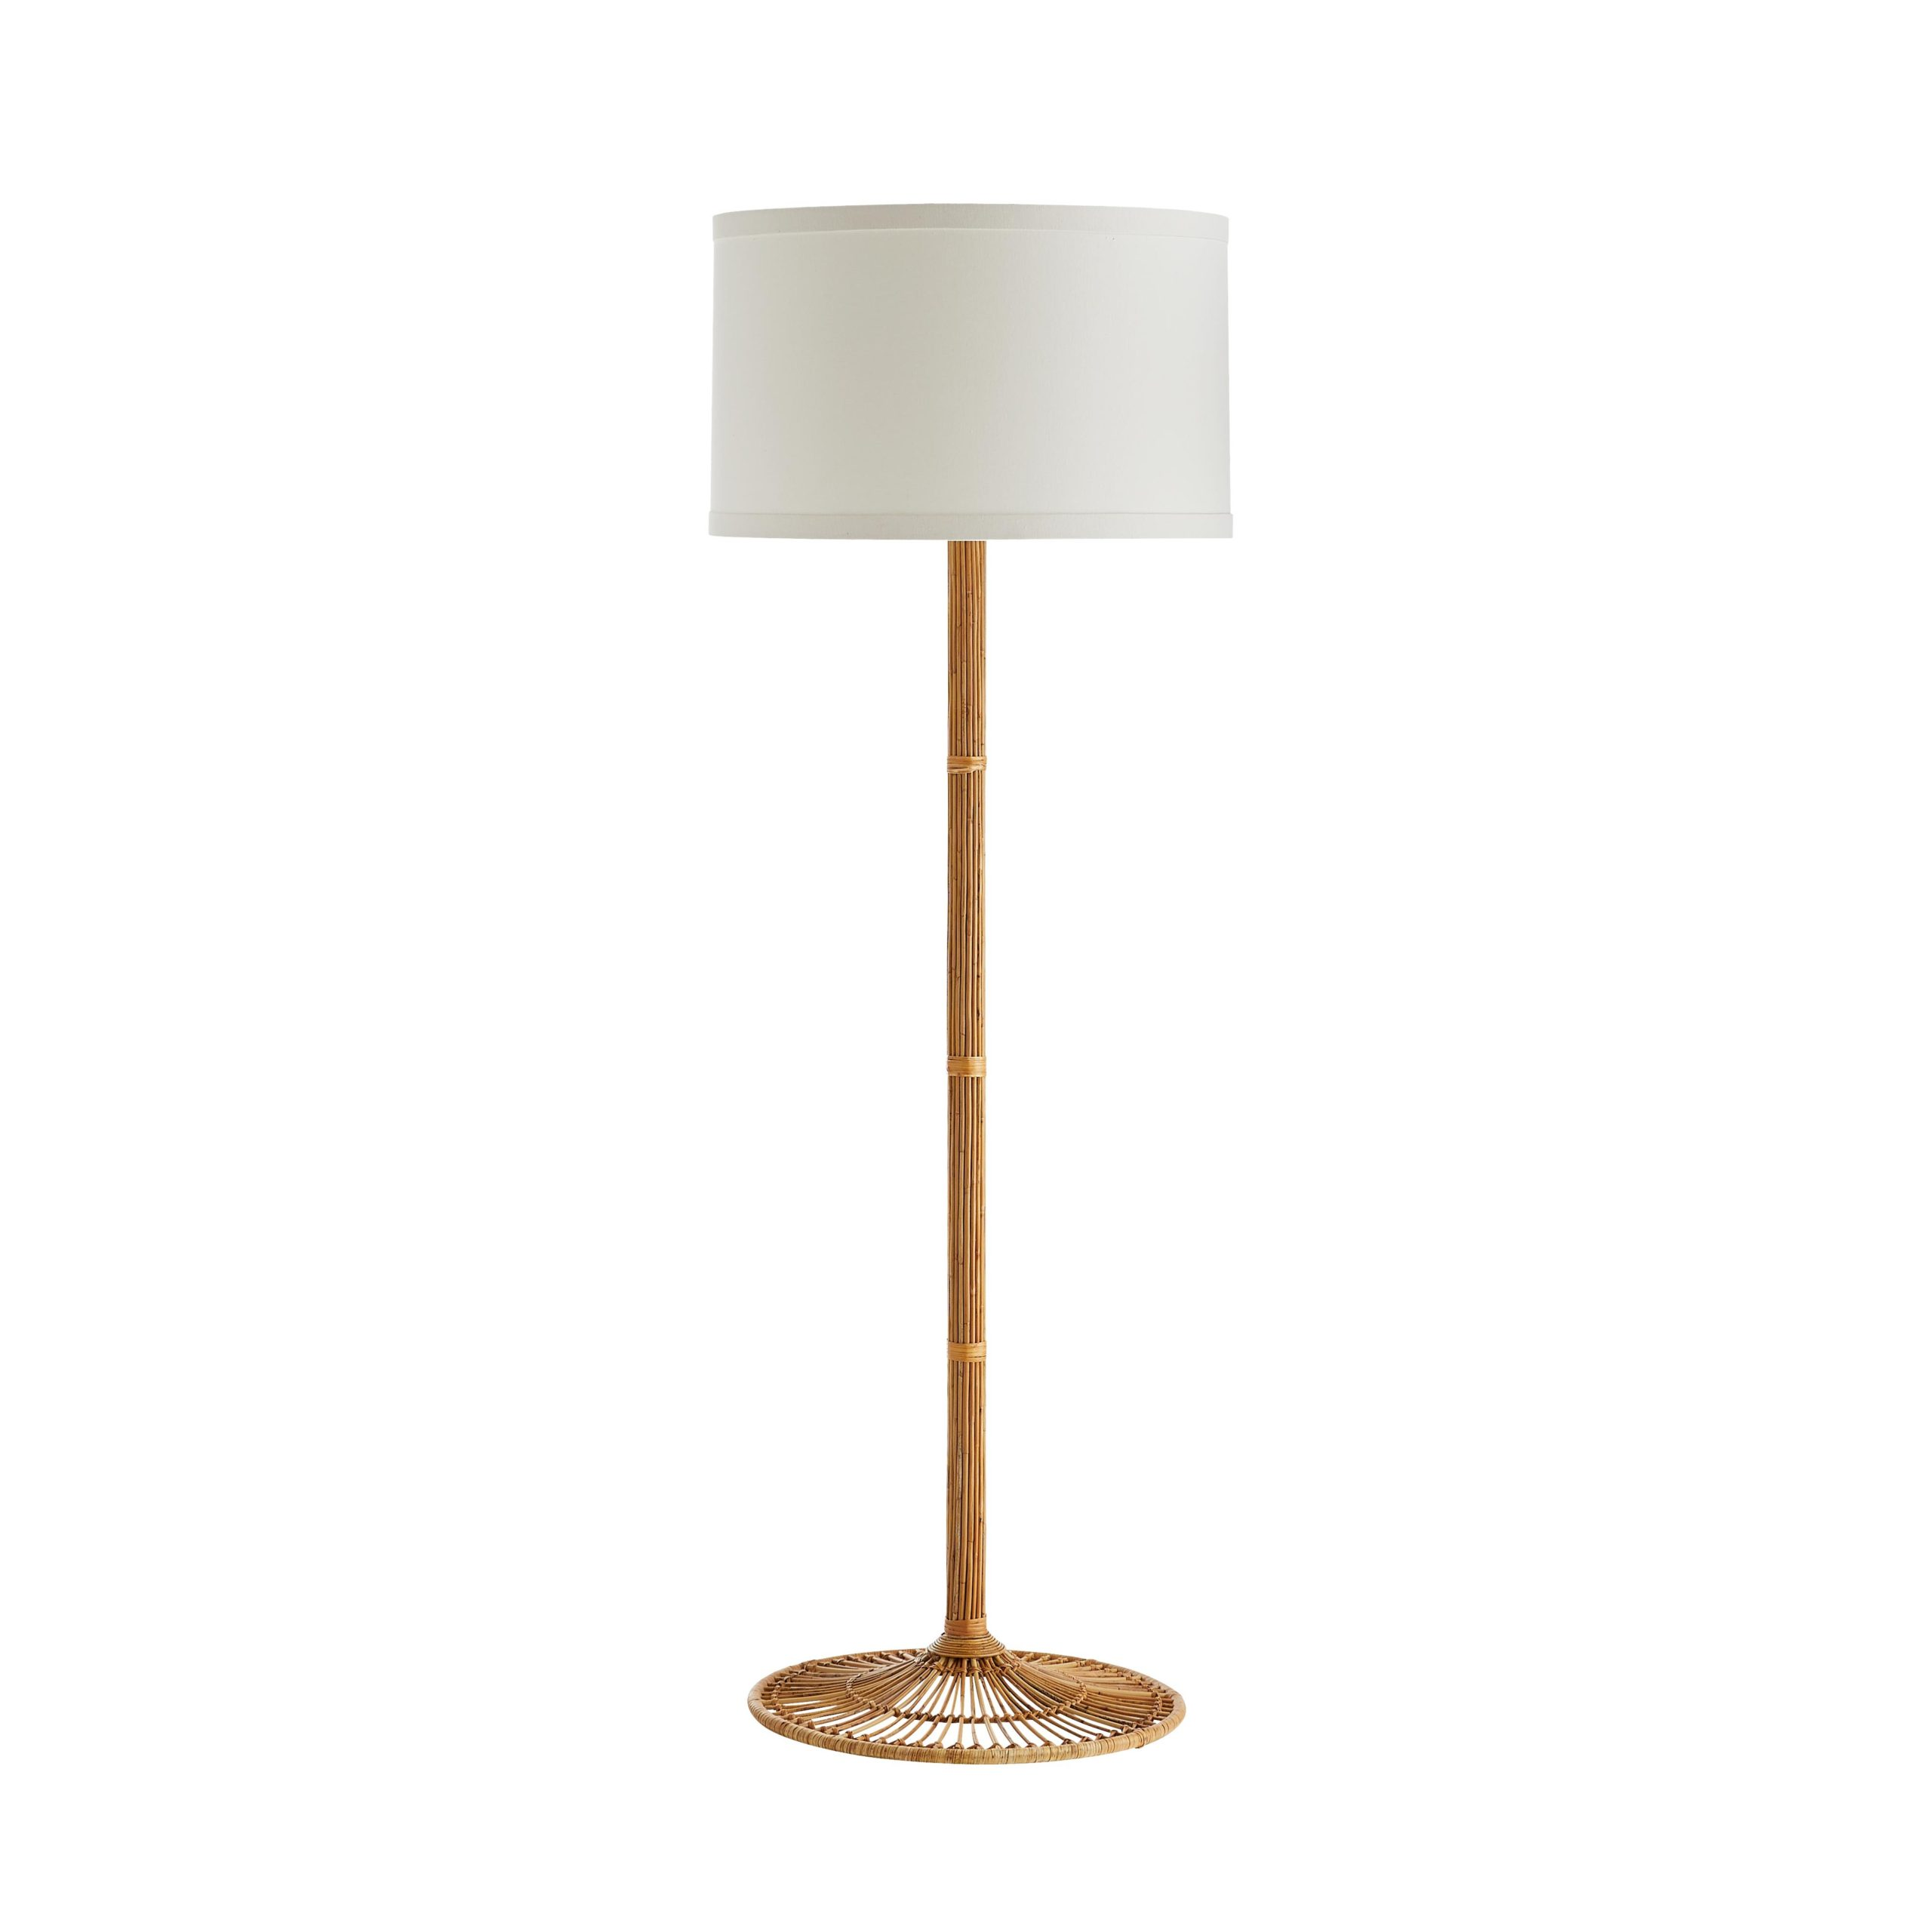 Walker Floor Lamp-$1,635.00